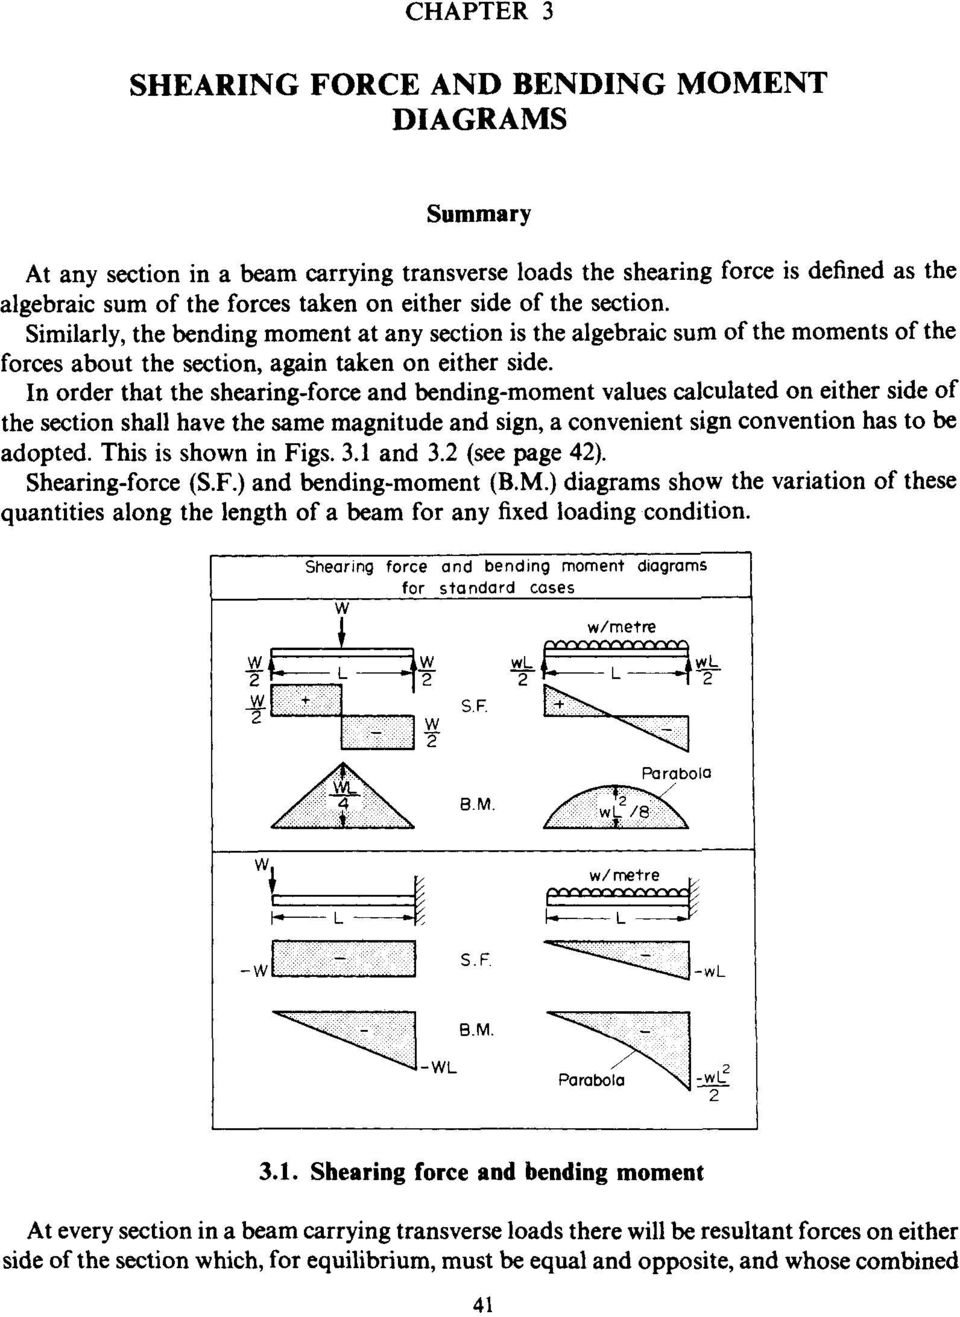 Chapter 3 Shearing Force And Bending Moment Diagrams Summary Pdf For Frames In Order That The Values Calculated On Either Side